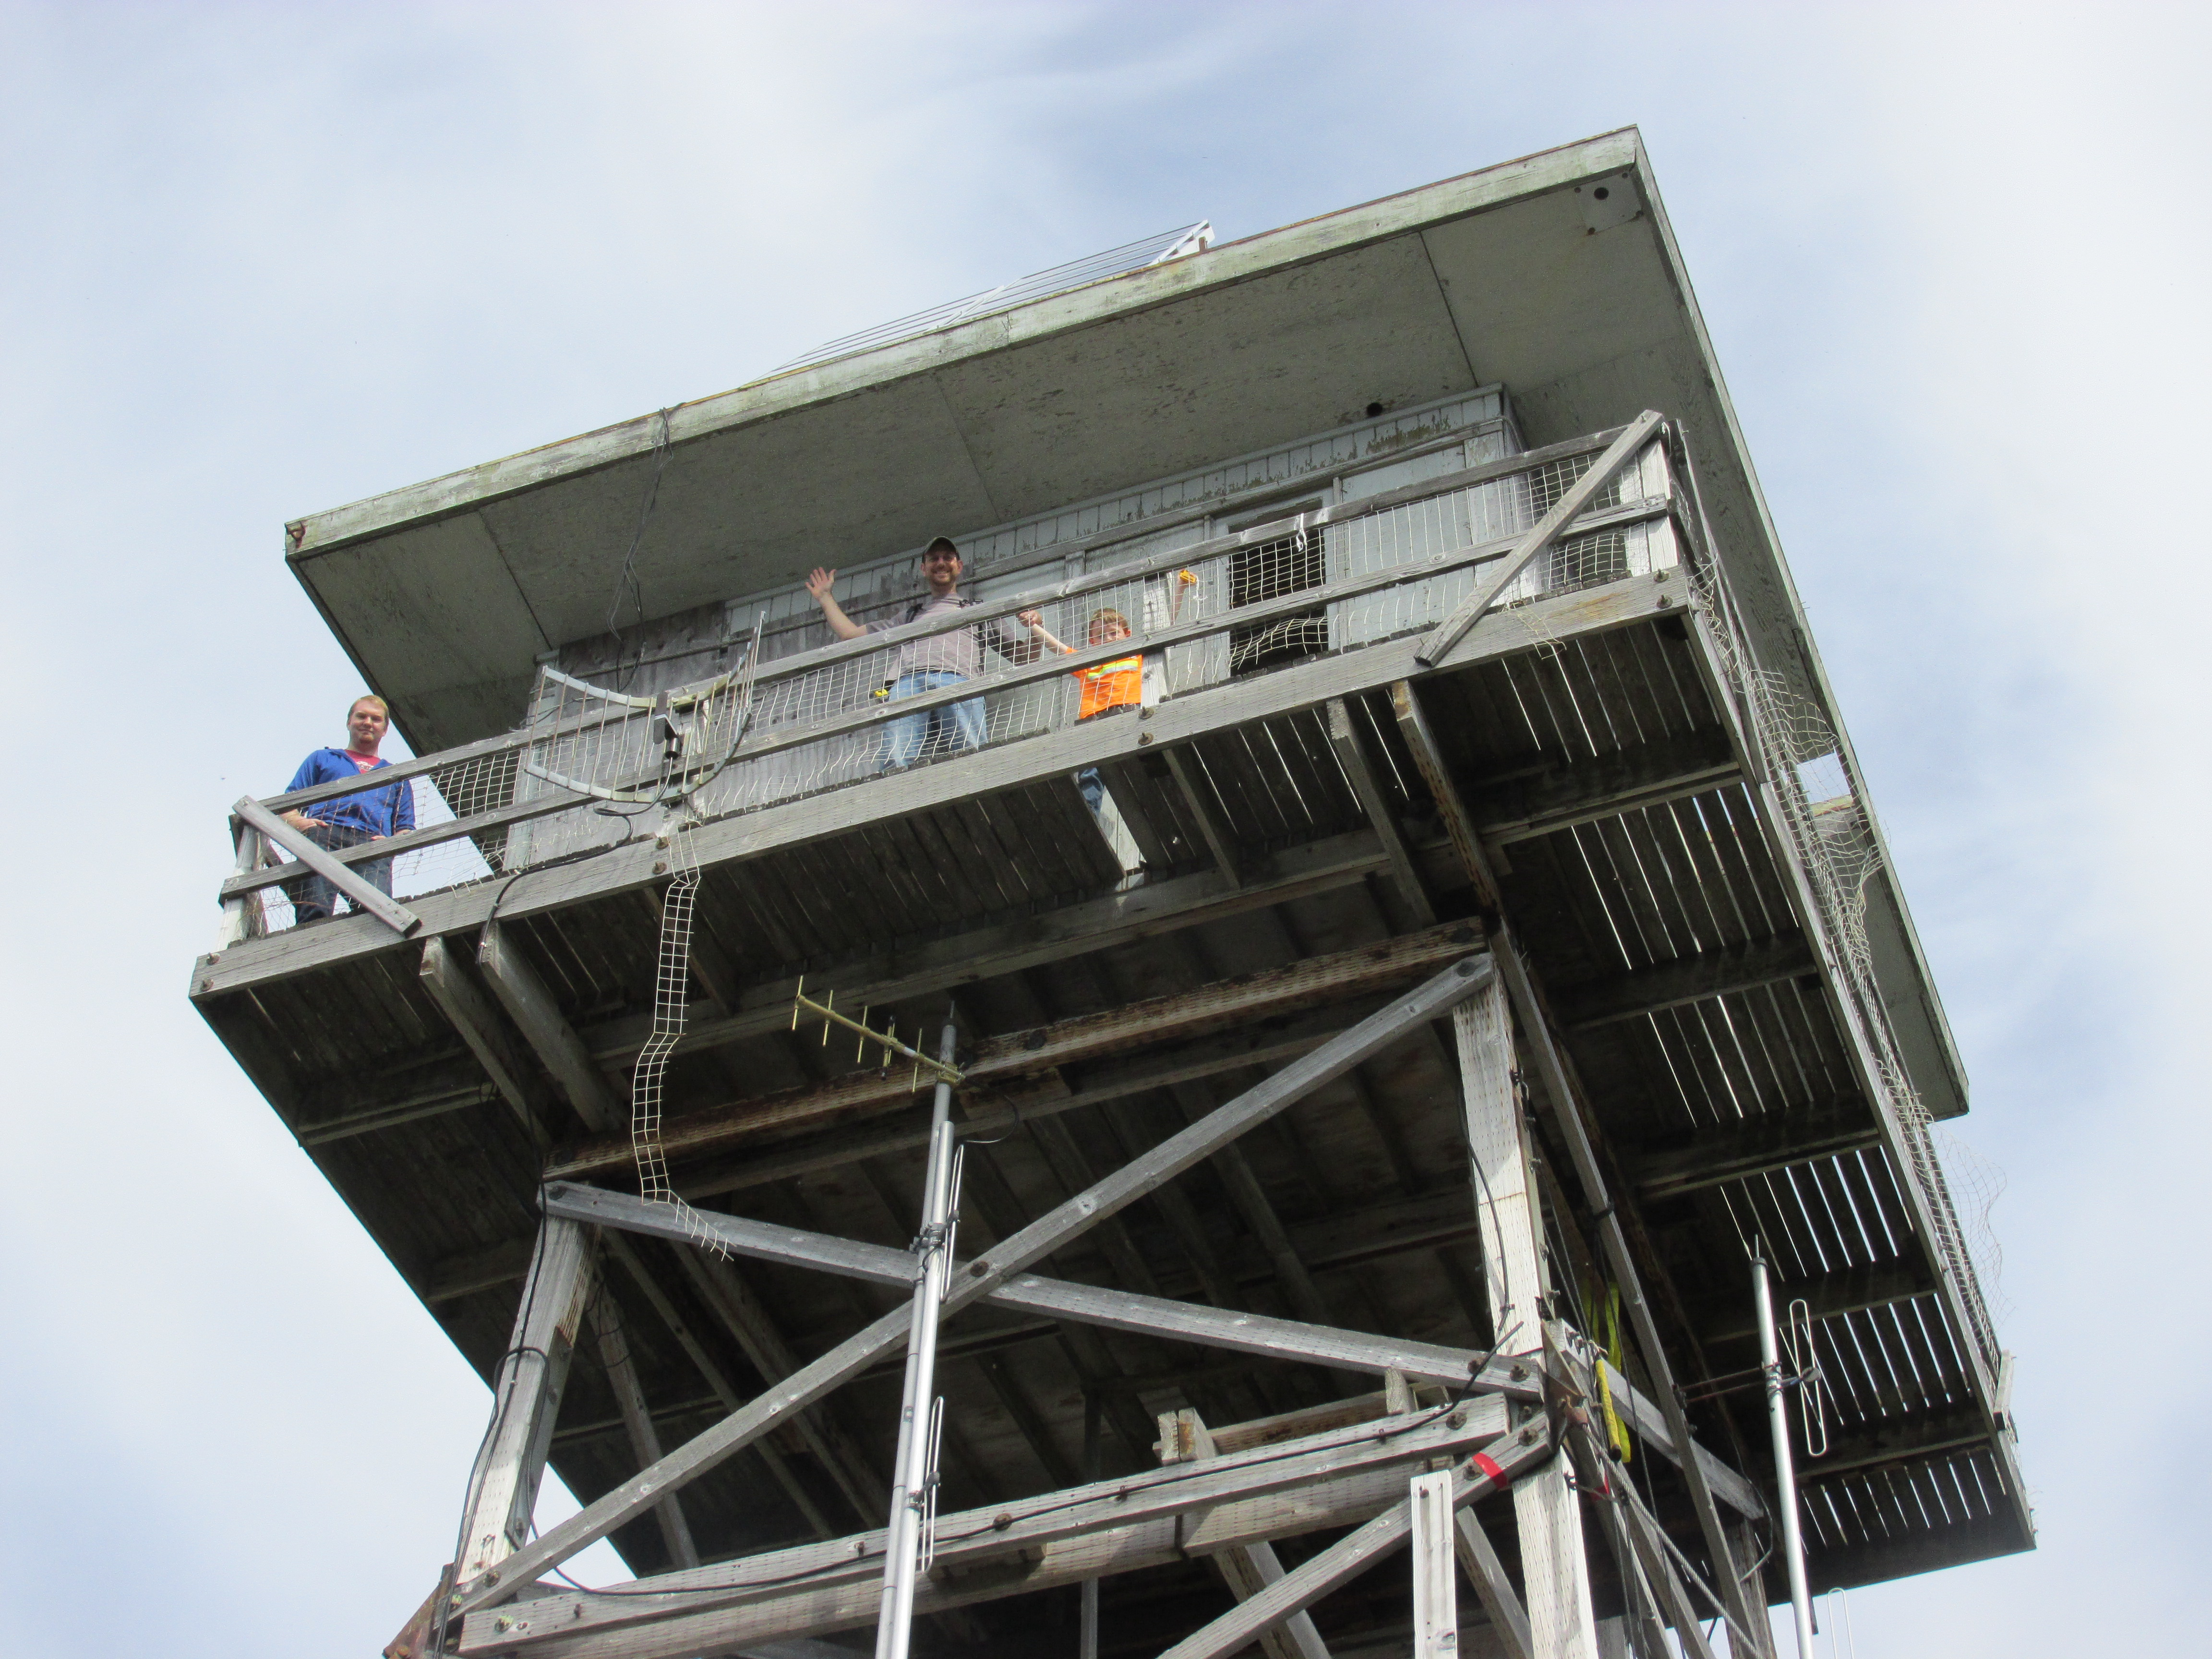 structural engineering for repair and assessment of tower